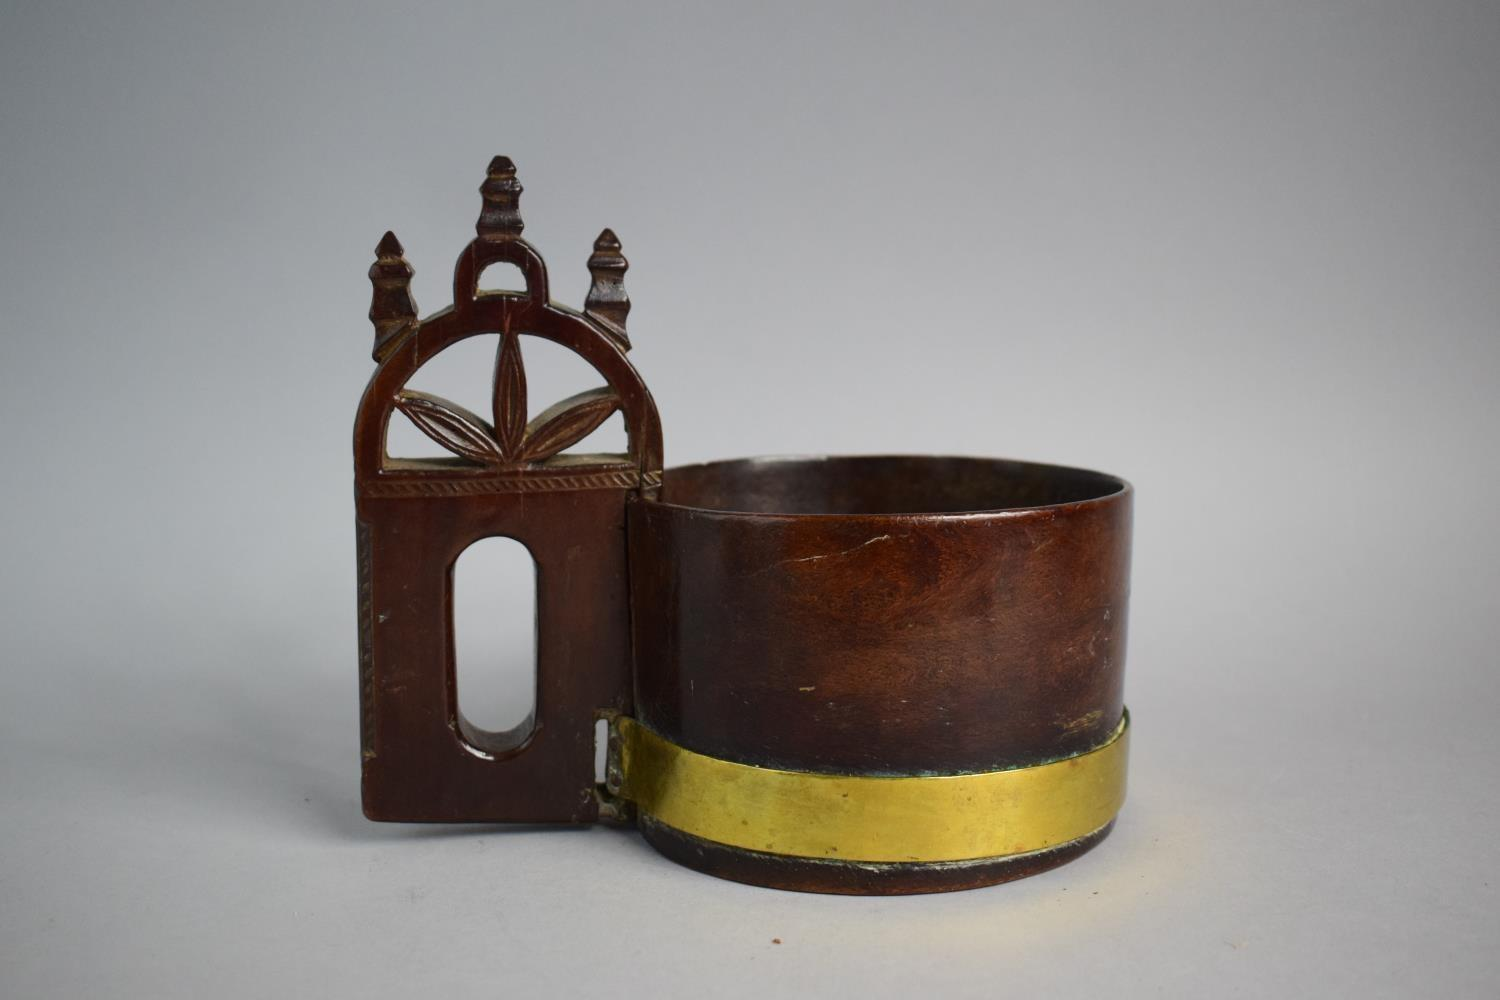 Lot 44 - A Brass Banded North European/Nordic Burr Wood Drinking Vessel with Carved and Pierced Gothic